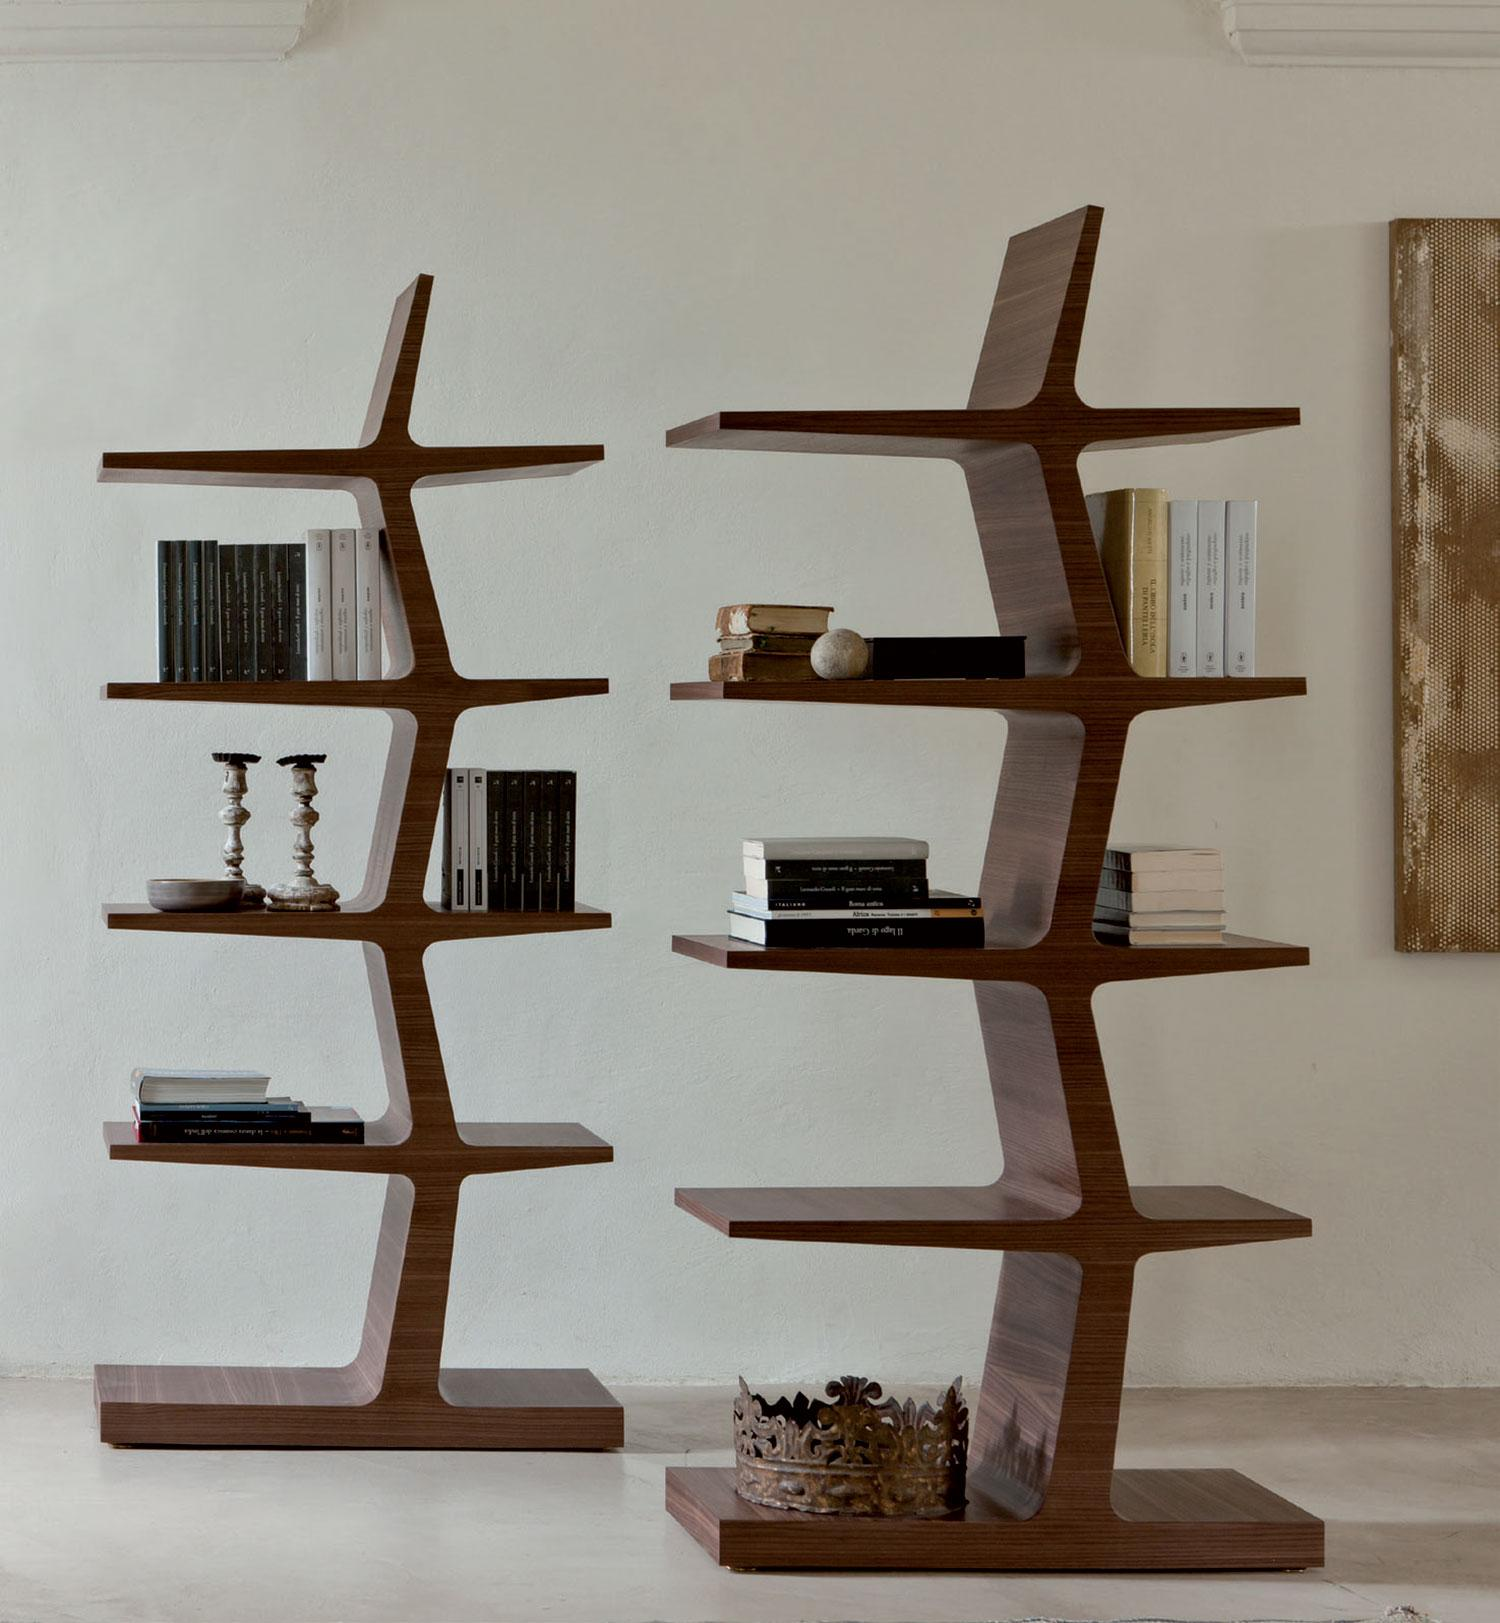 alba libreria in legno massello - italy dream design